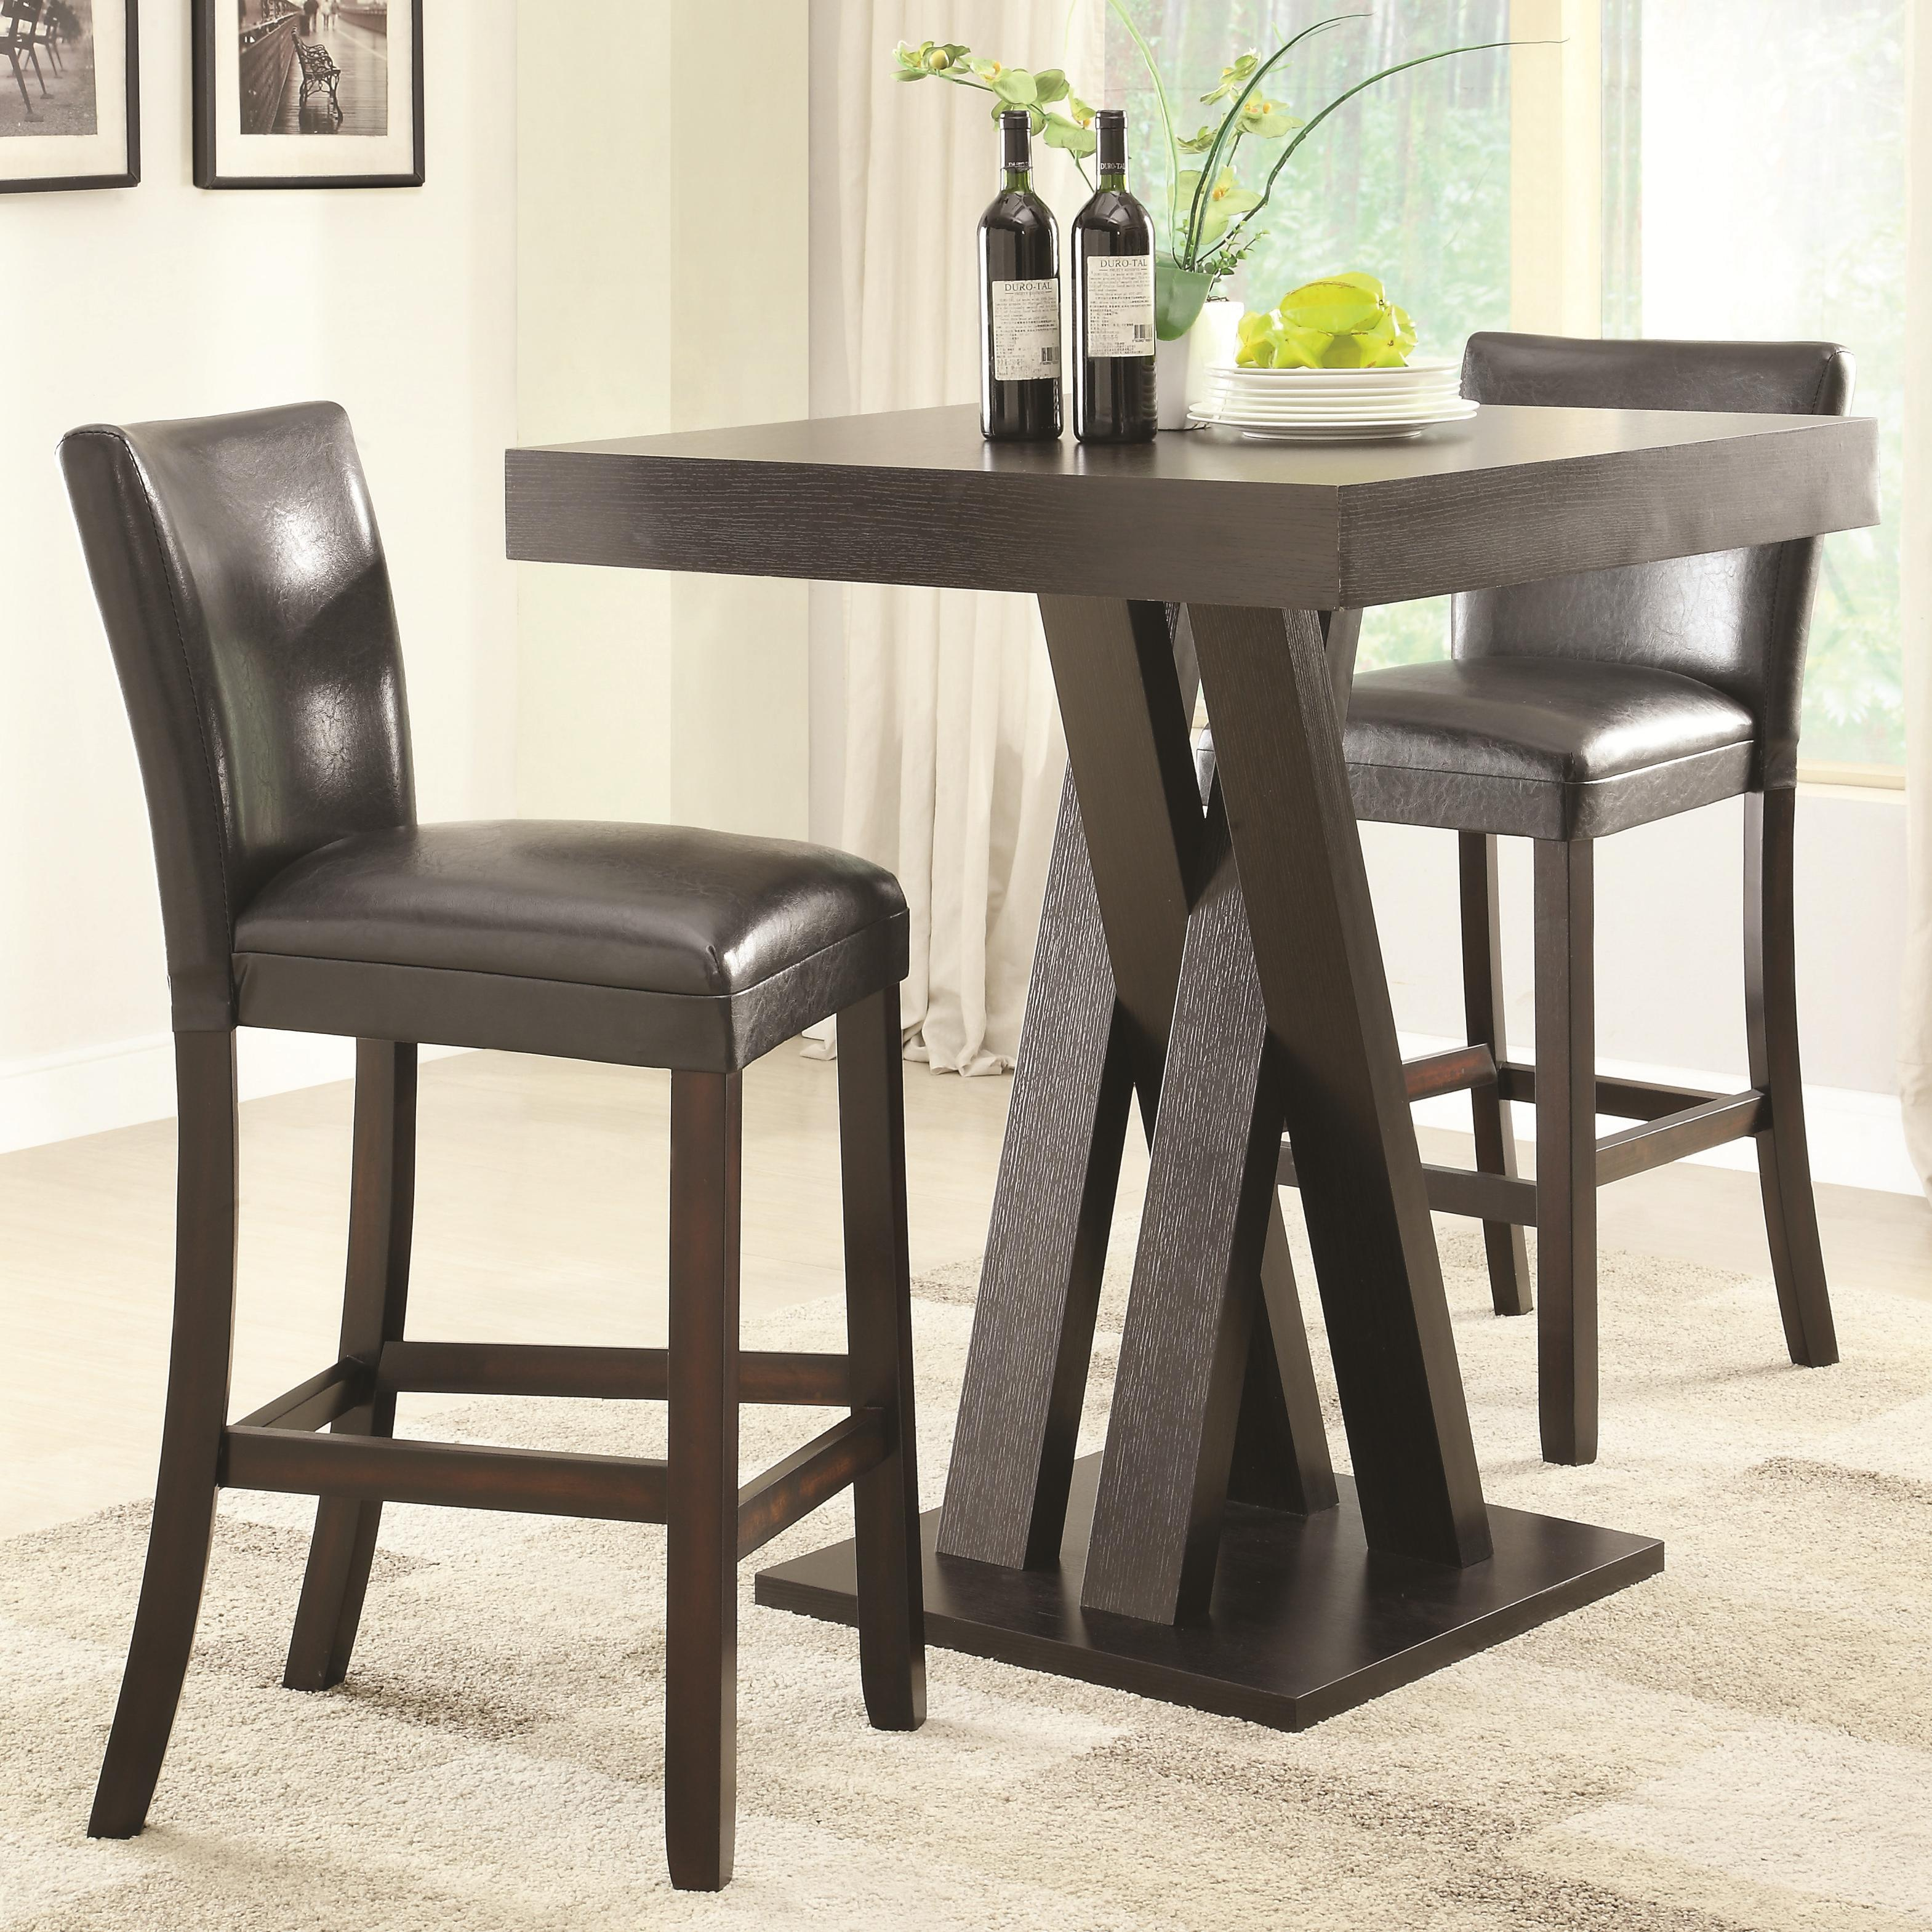 for small bar height tables glass outstanding top two room square sets chairs ratt high in pub circle black and snacks some dining table wooden with vase ikea